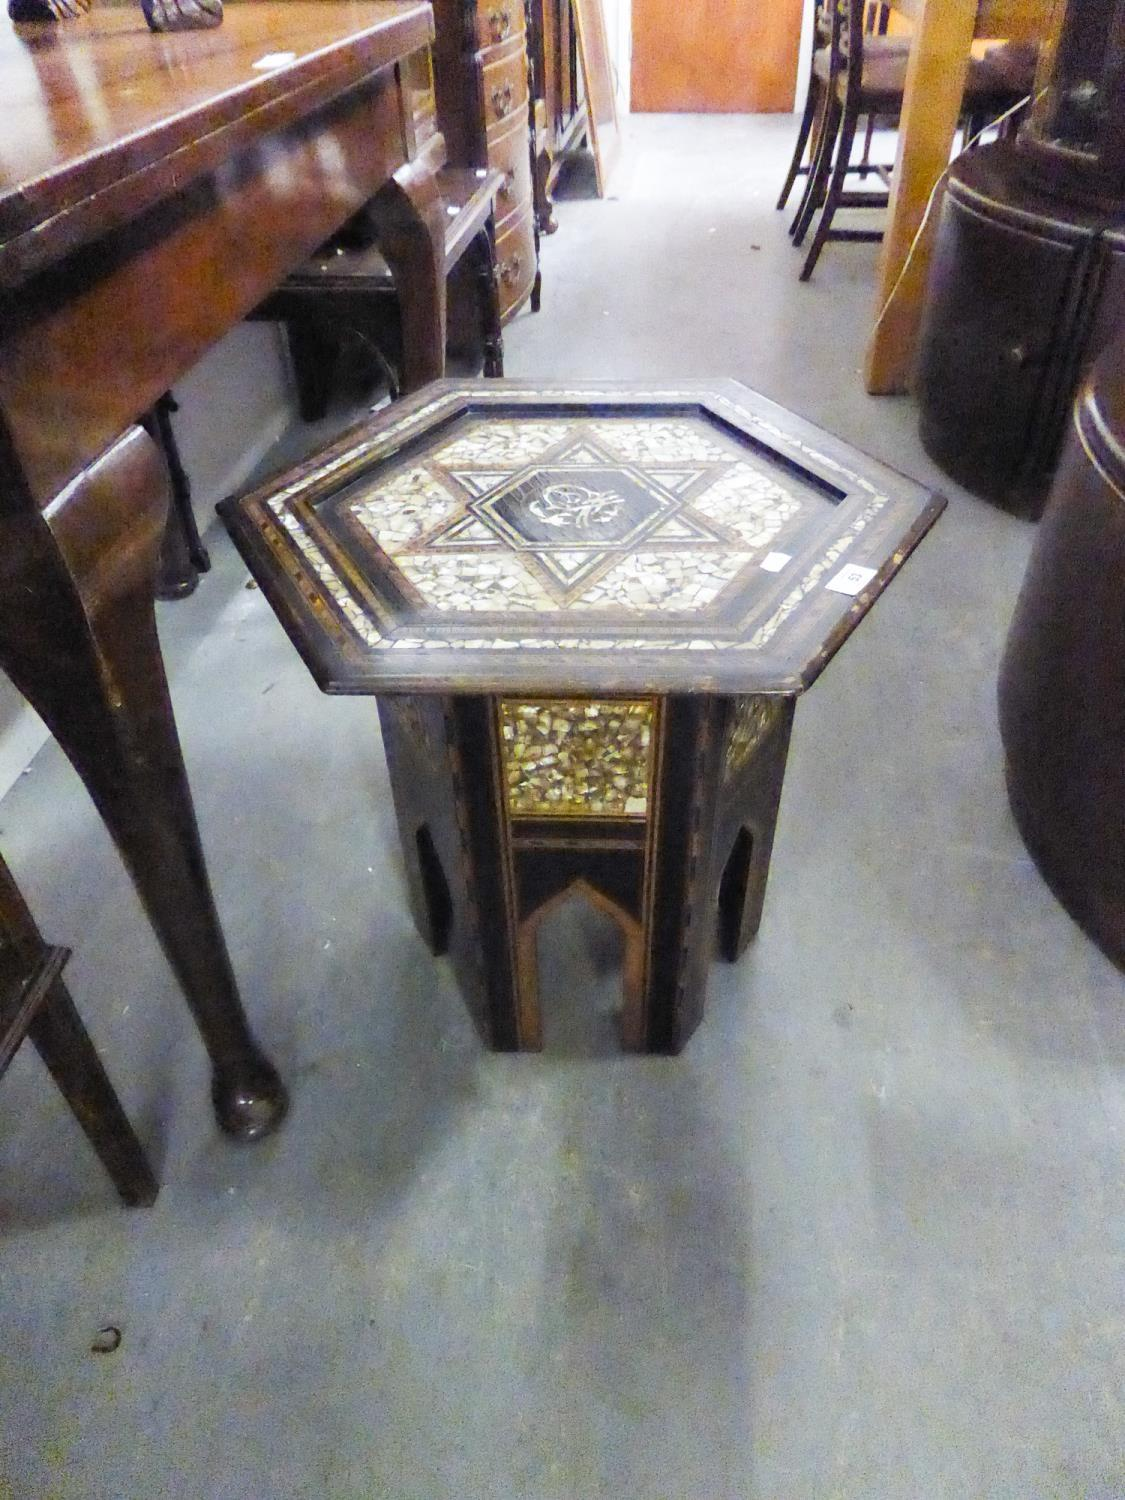 Lot 53 - EARLY TWENTIETH CENTURY INDIAN TABLE, HAVING HEXAGONAL TOP ON SHAPED BASE, WITH MOTHER O'PEARL AND